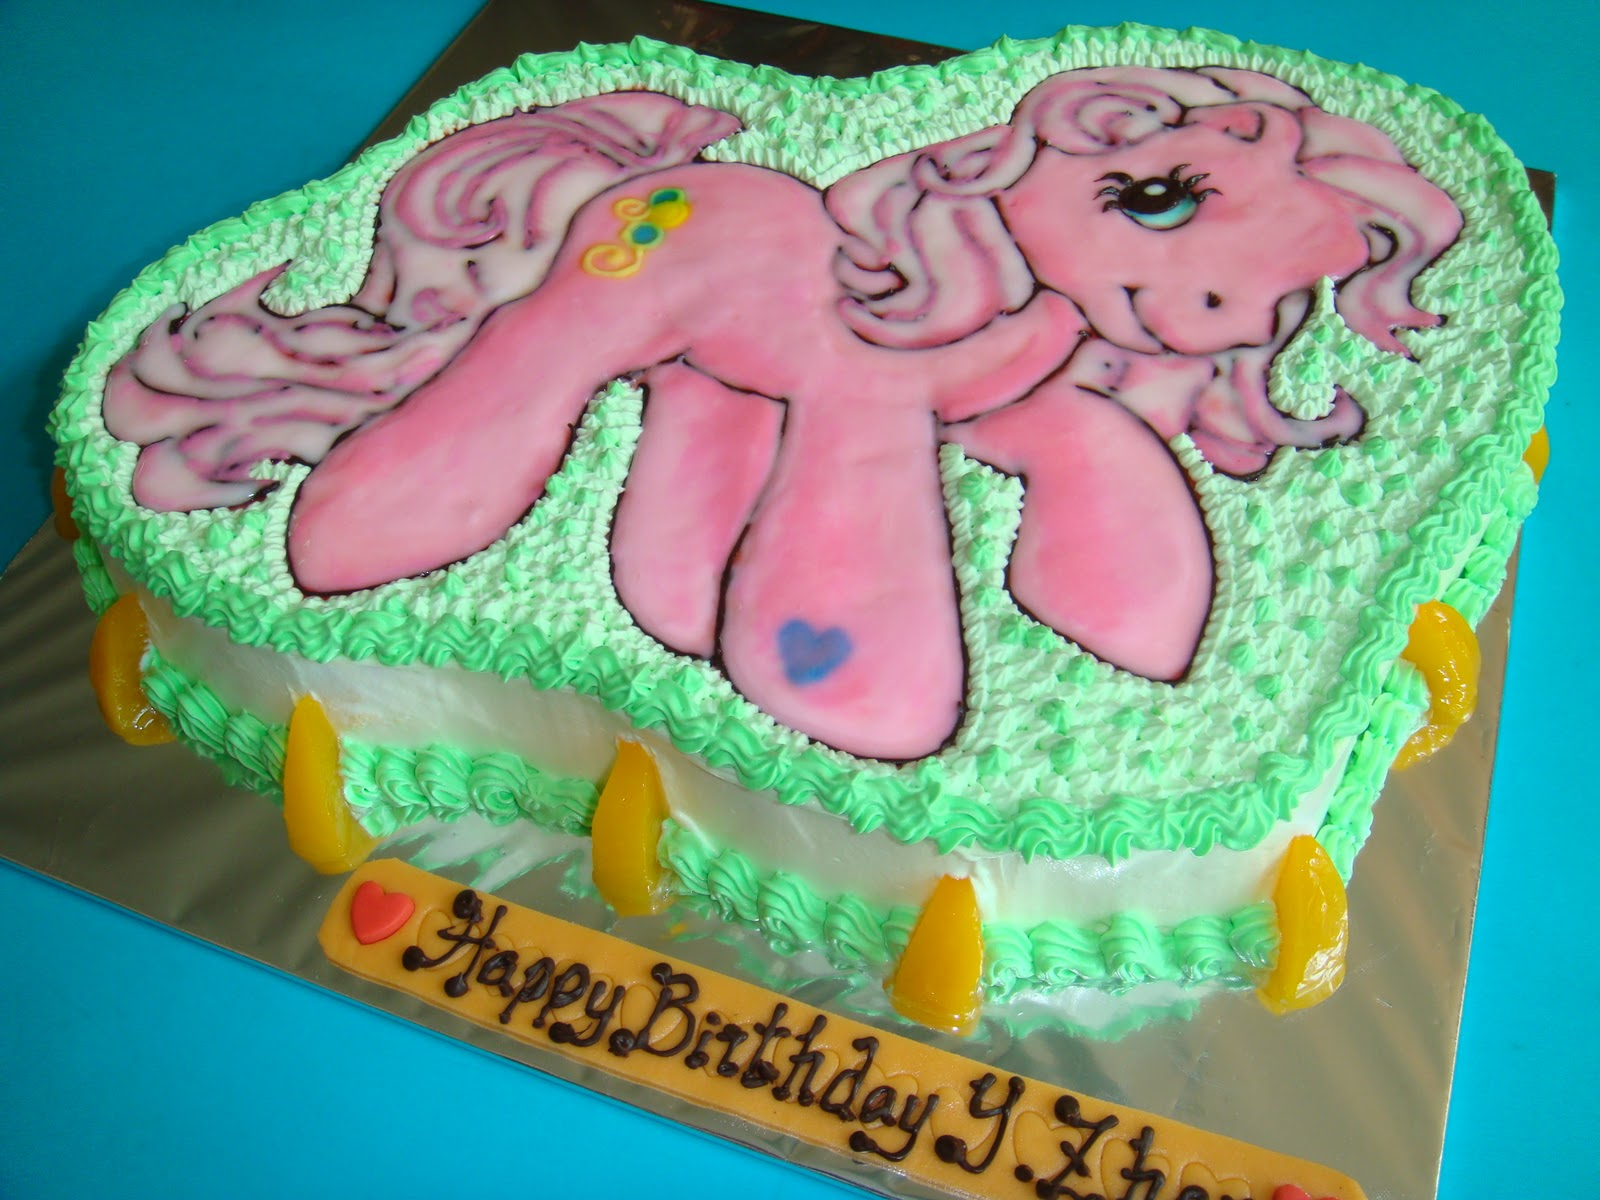 Cake Designs My Little Pony : My Little Pony Cakes   Decoration Ideas Little Birthday ...